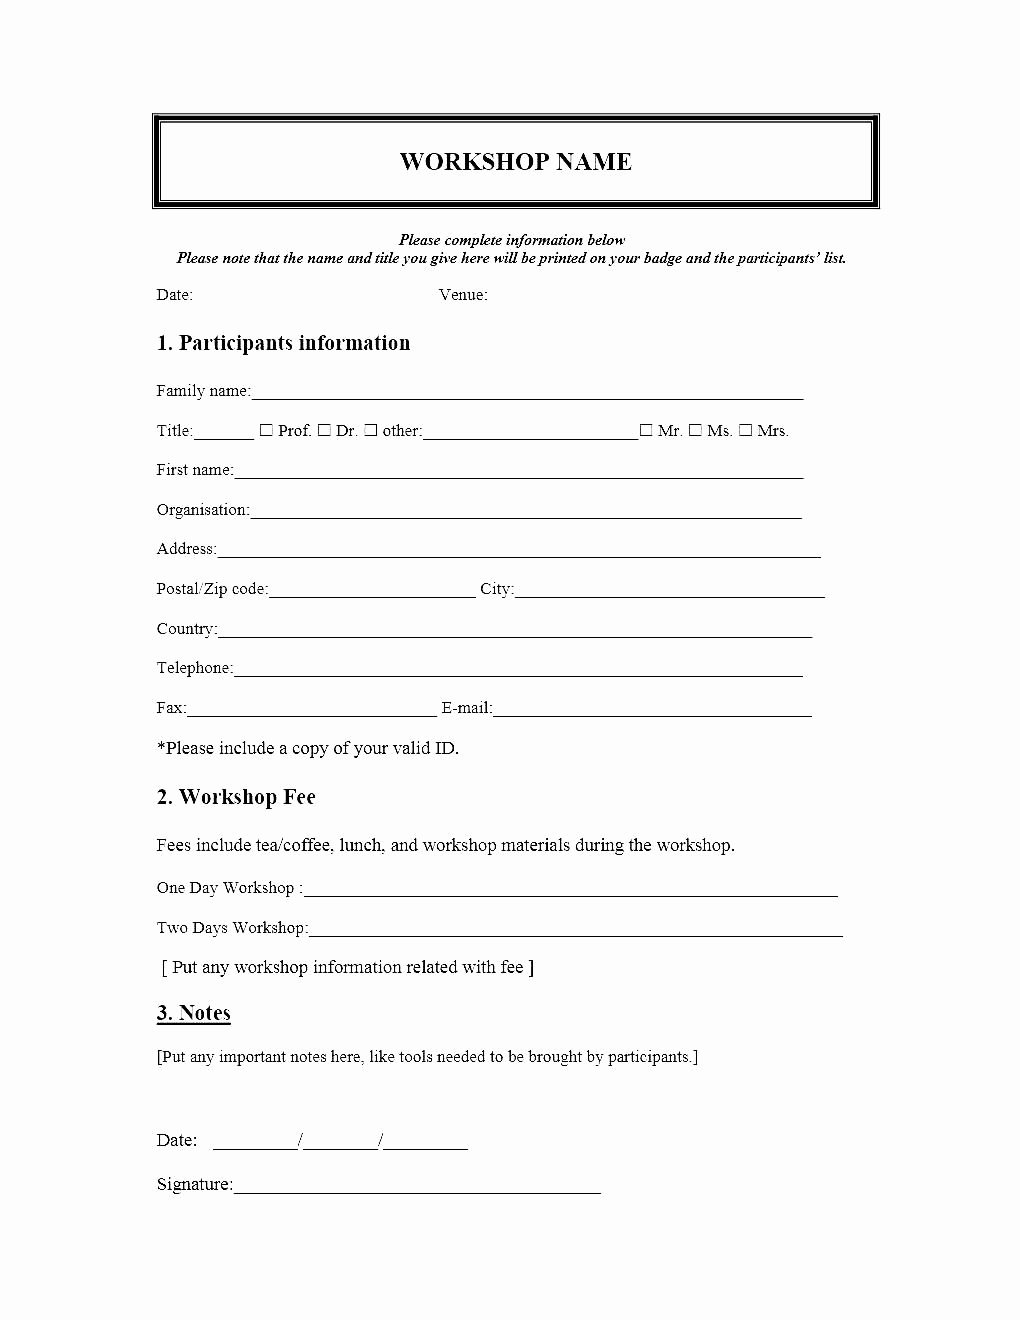 Conference Registration form Template Word Inspirational event Registration form Template Microsoft Word